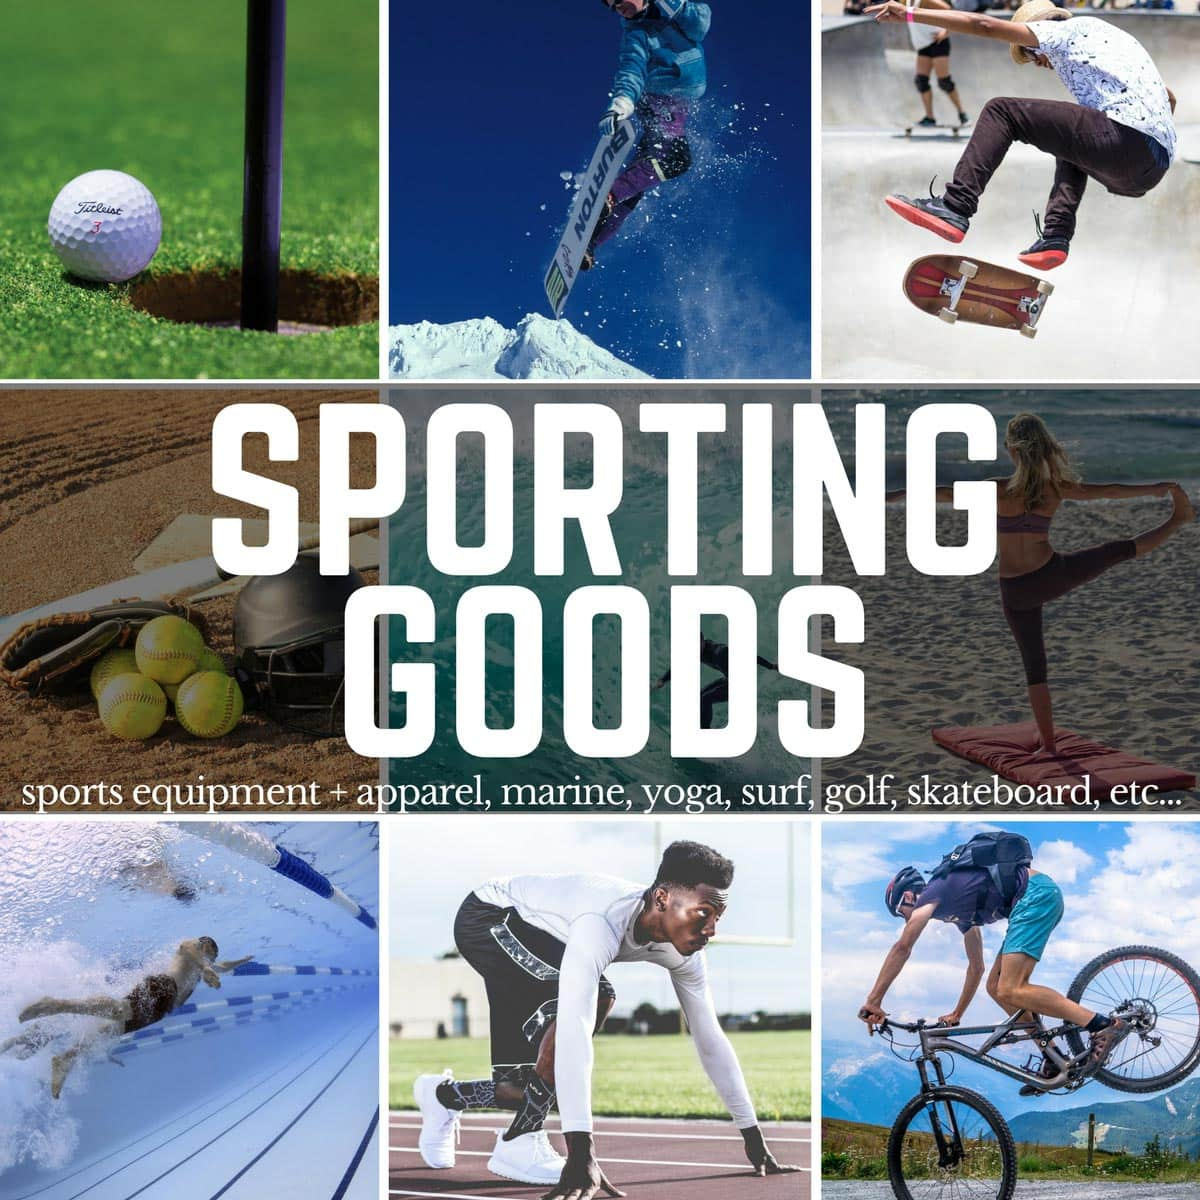 american made sporting goods, made in usa sporting goods, american made golf balls, made in usa golf balls, american made snowboard, made in usa snowboard, american made skis, made in usa skis, american made baseball bat, made in usa baseball bat, american made baseball glove, made in usa baseball glove, american made baseball, made in usa baseball, american made football, made in usa football, made in usa yoga pants, american made yoga pants, made in usa bicycle, american made bicycle